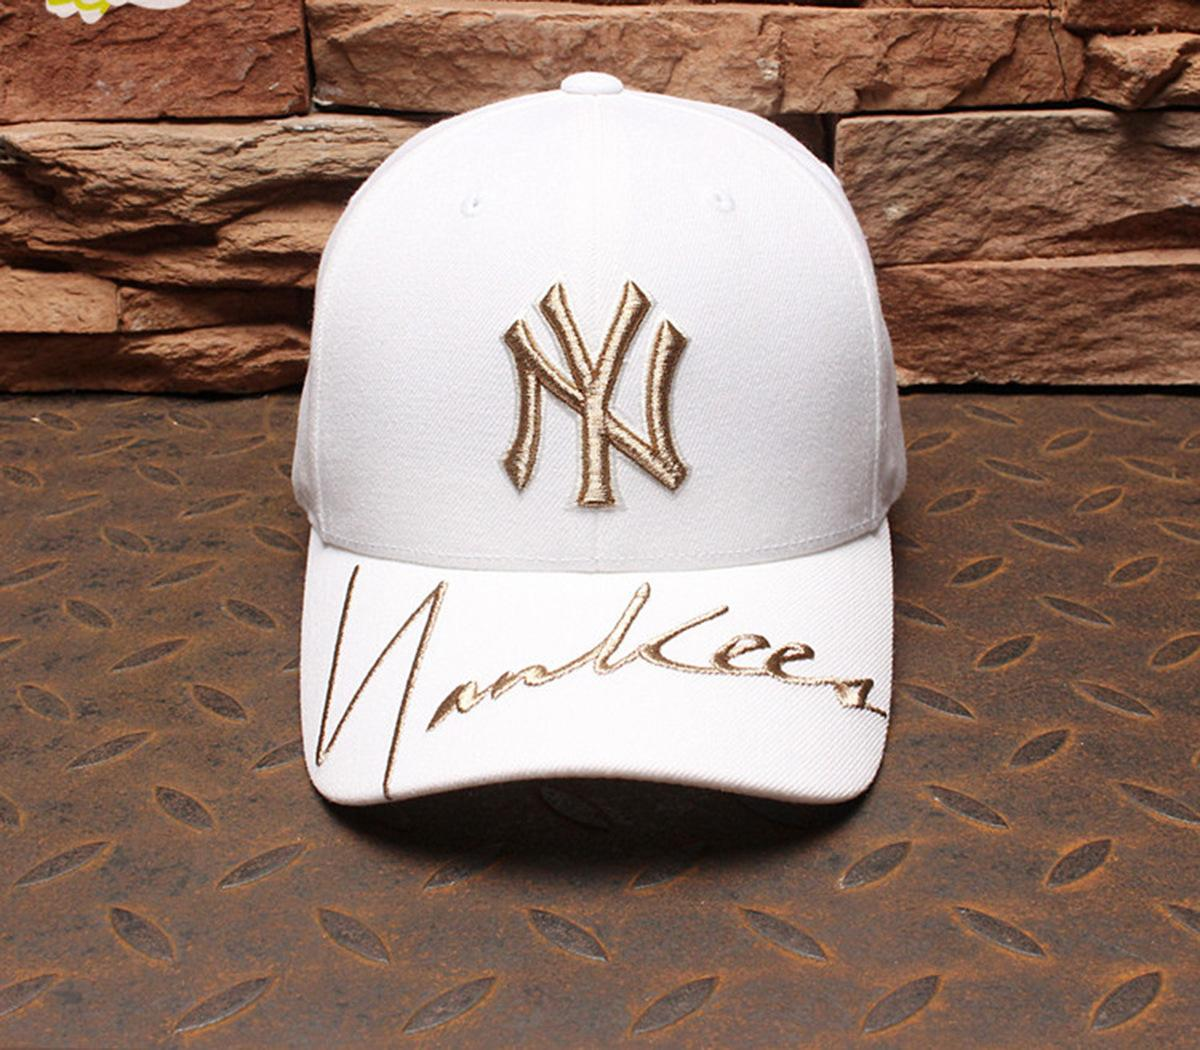 161e88dfc6 Hats, men's and women's hats, gold caps, Yankees hats, fashion and fashion